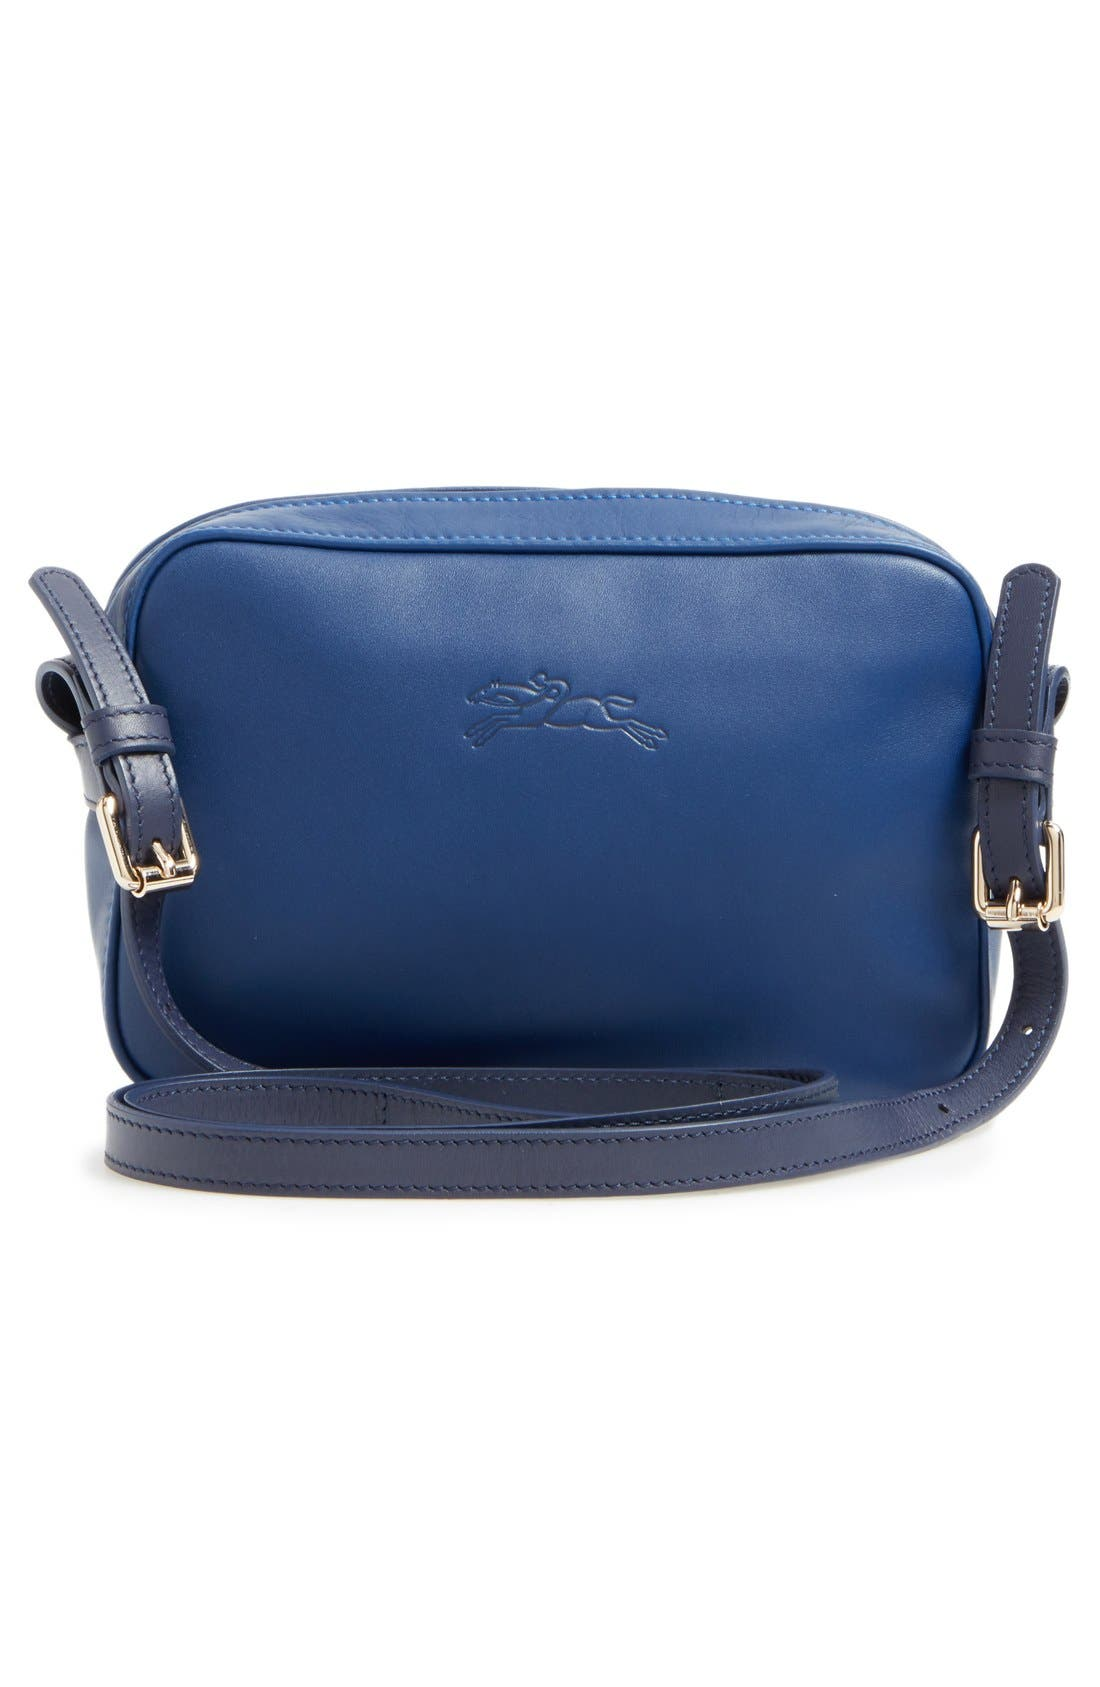 '2.0' Two-Tone Leather Crossbody Bag,                             Alternate thumbnail 2, color,                             Blue/ Navy